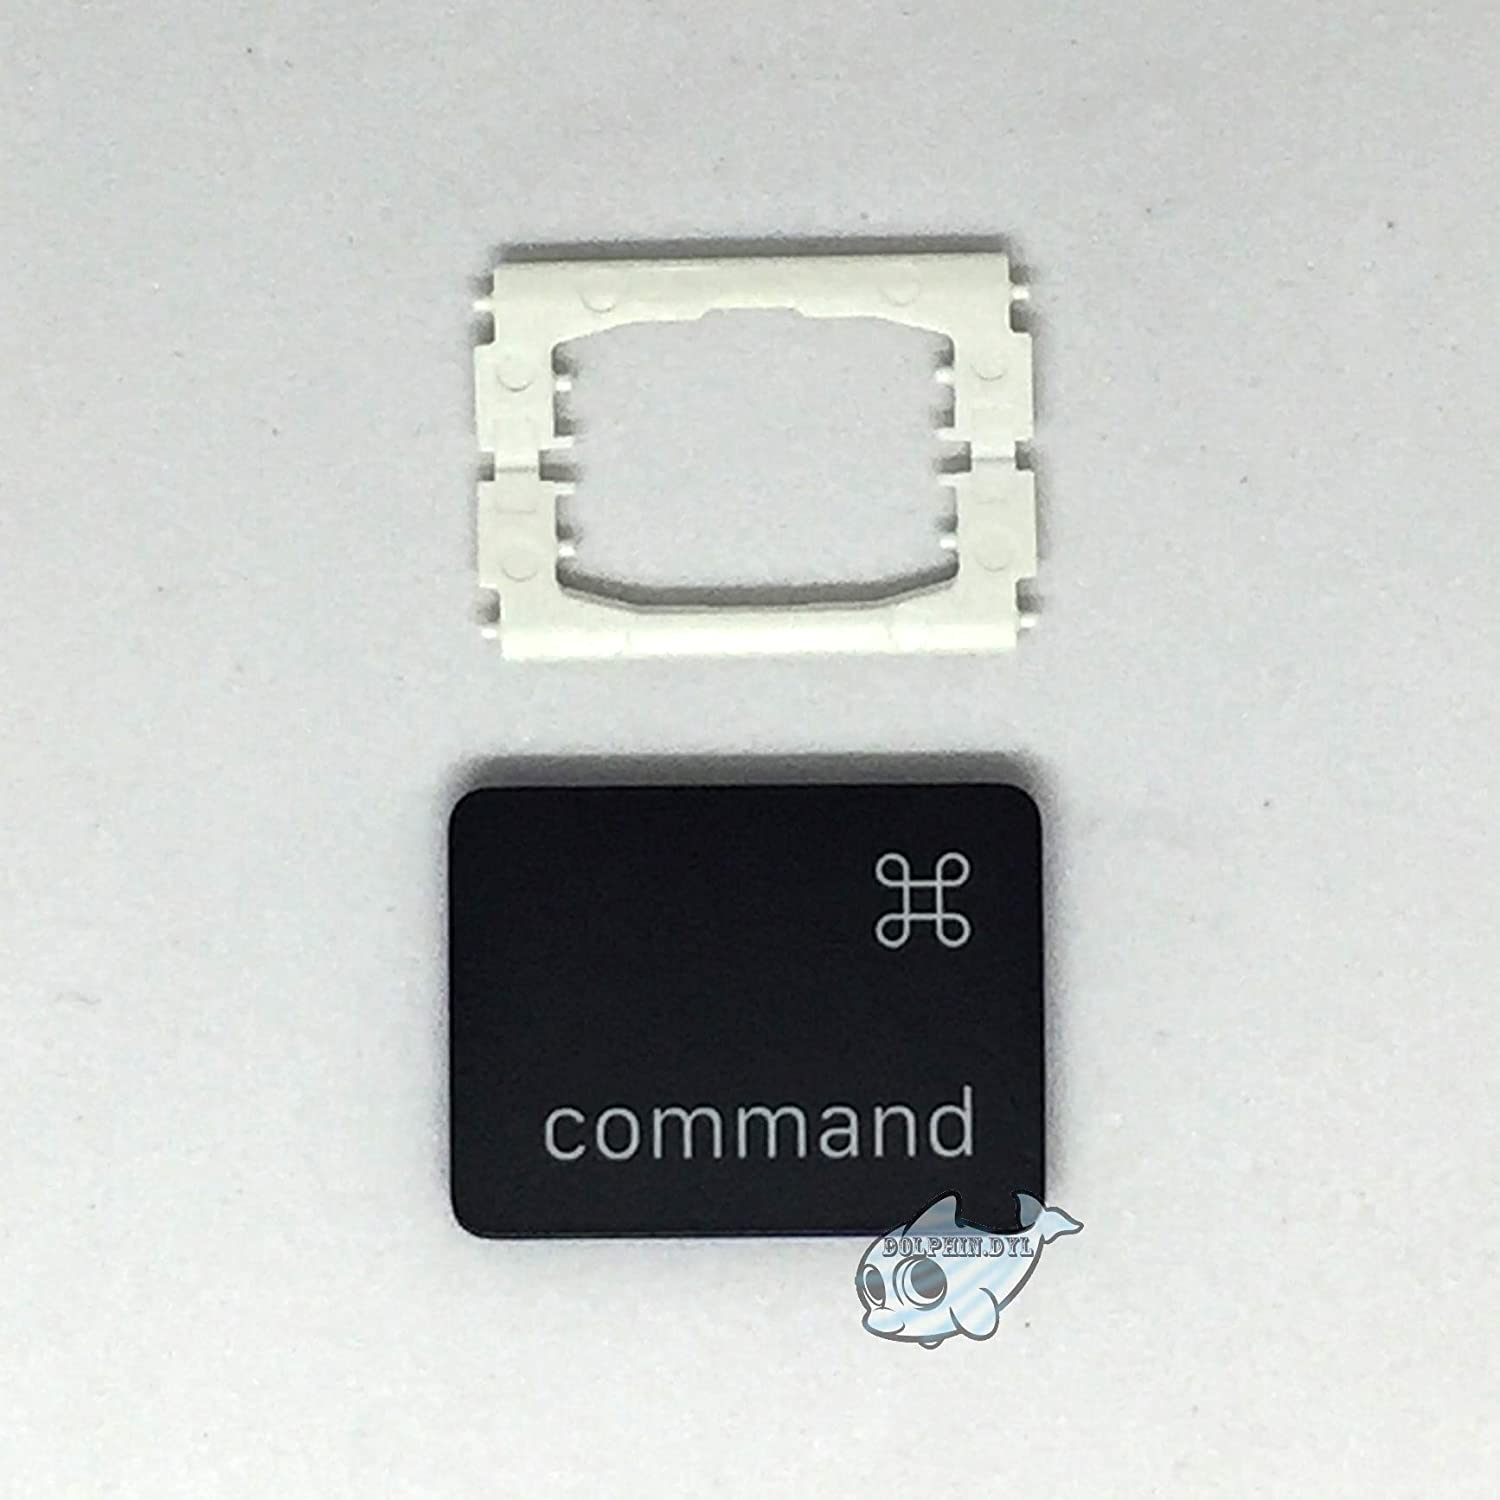 Dolphin.dyl TM Replacement Individual Key Cap for US MacBook Pro A1706 A1707 A1708 Key Cap with Hinge Left Command Key